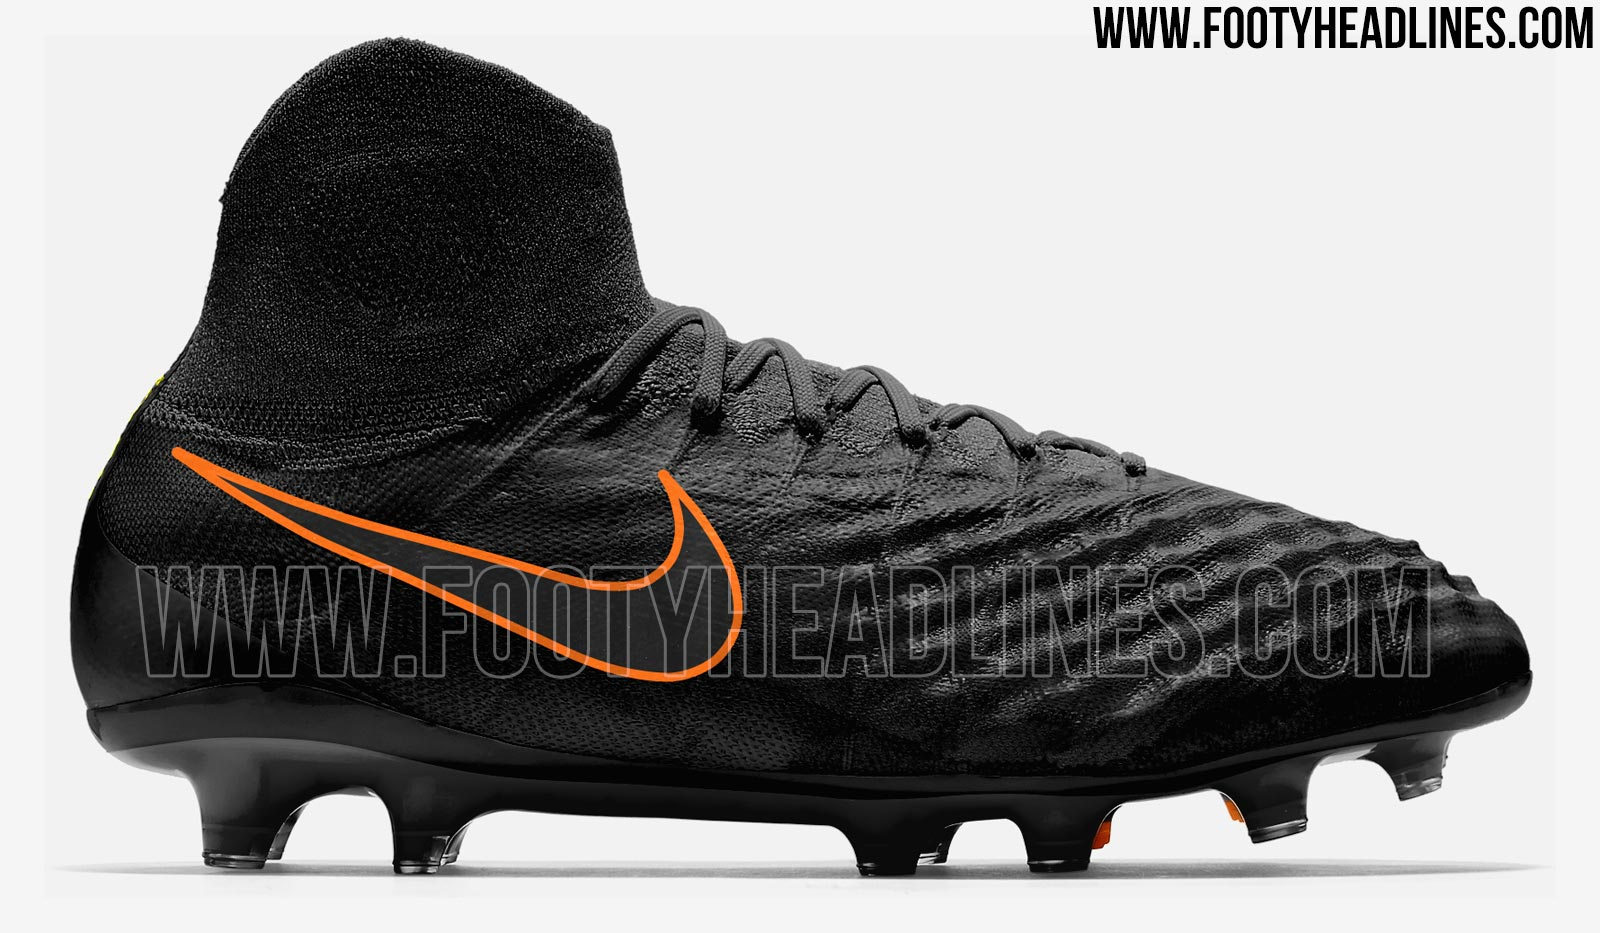 fth black nike magista obra ii 2016 boots leaked. Black Bedroom Furniture Sets. Home Design Ideas